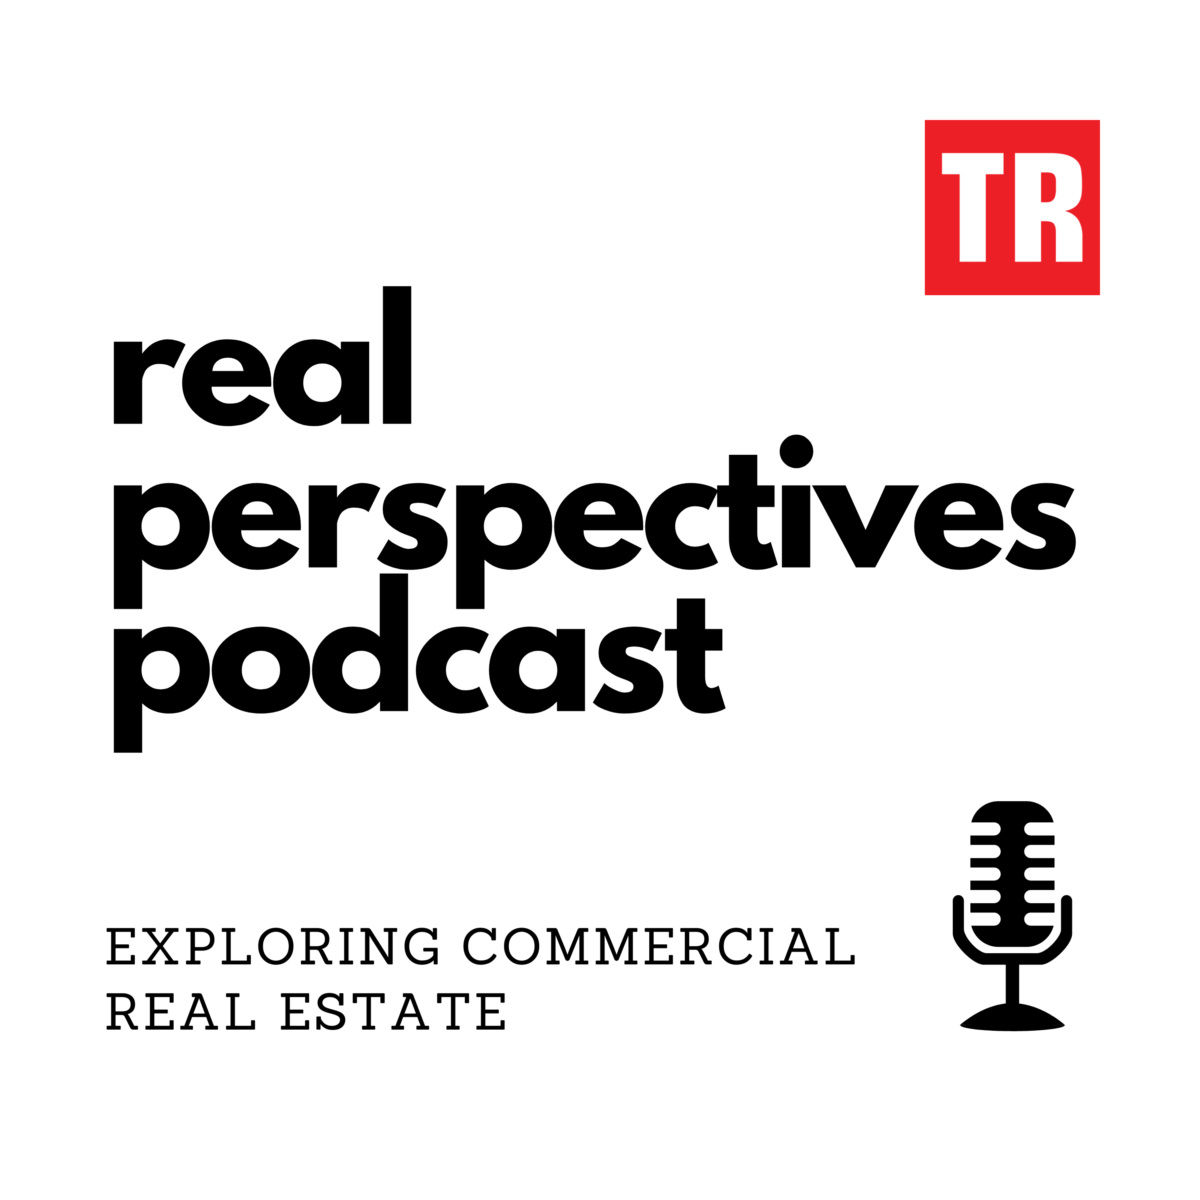 Banner for The Registry Real Perspectives Podcast, exploring commercial real estate